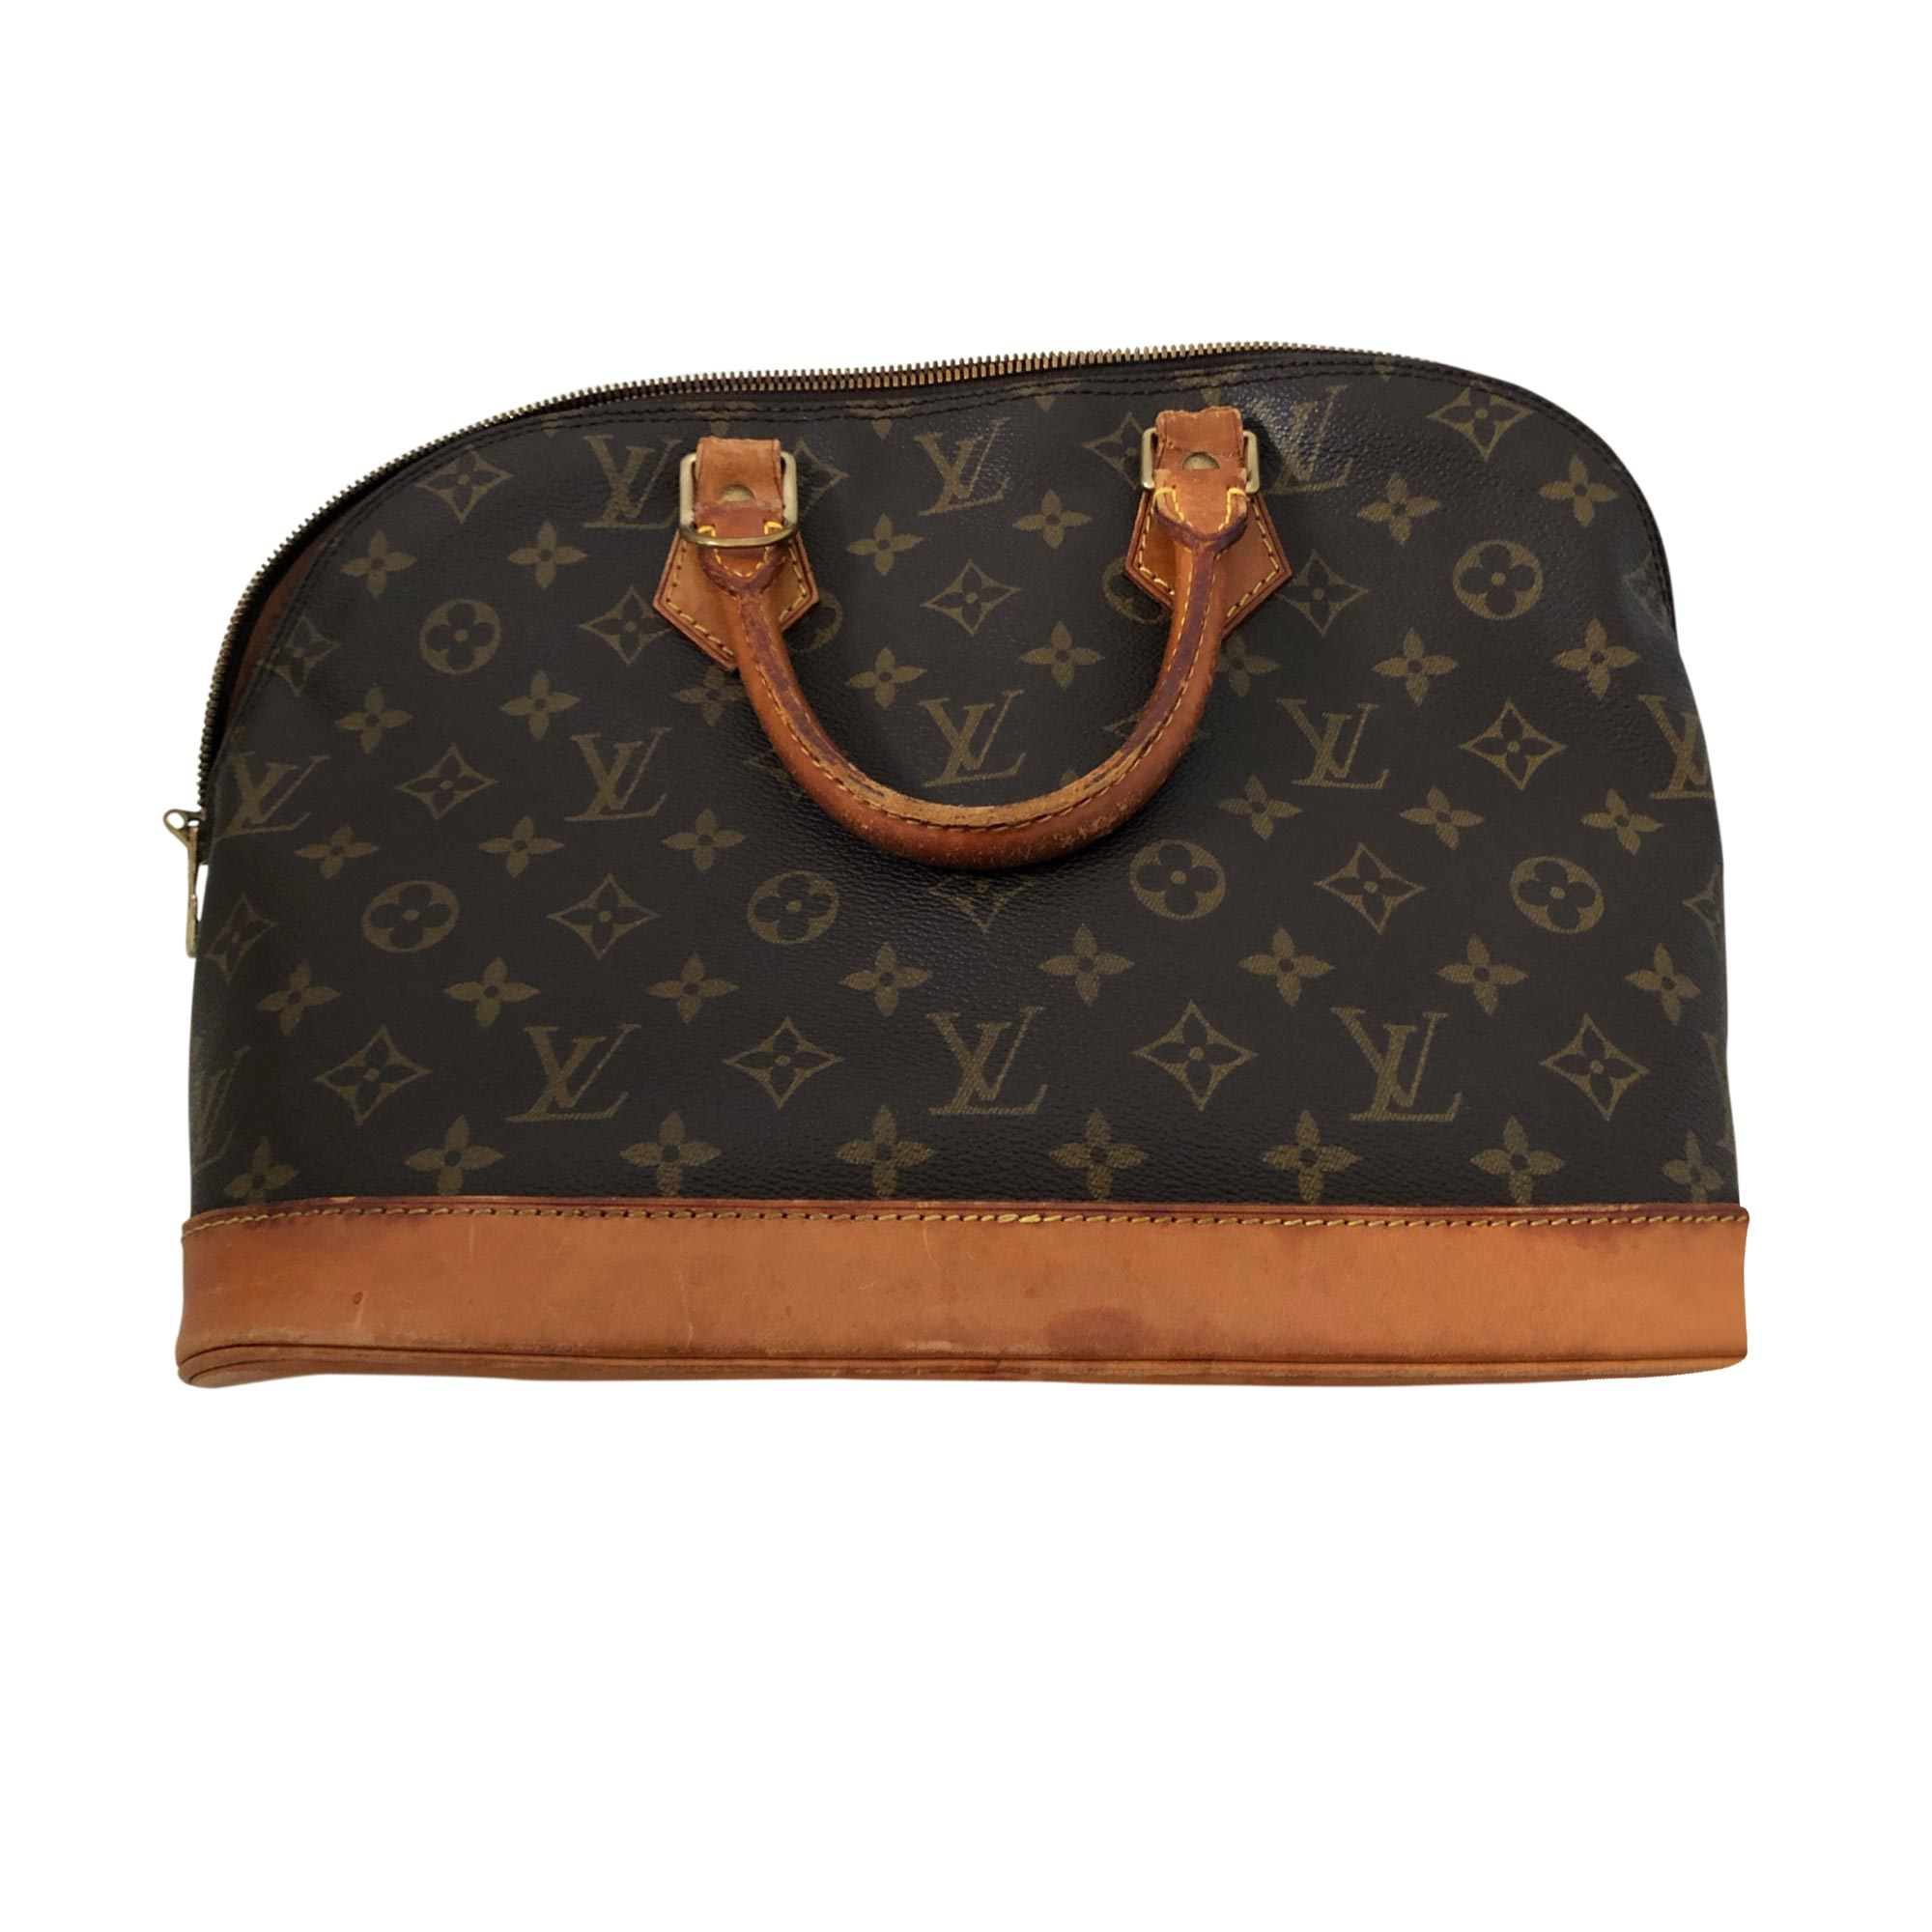 Borsetta in pelle LOUIS VUITTON Beige, cammello